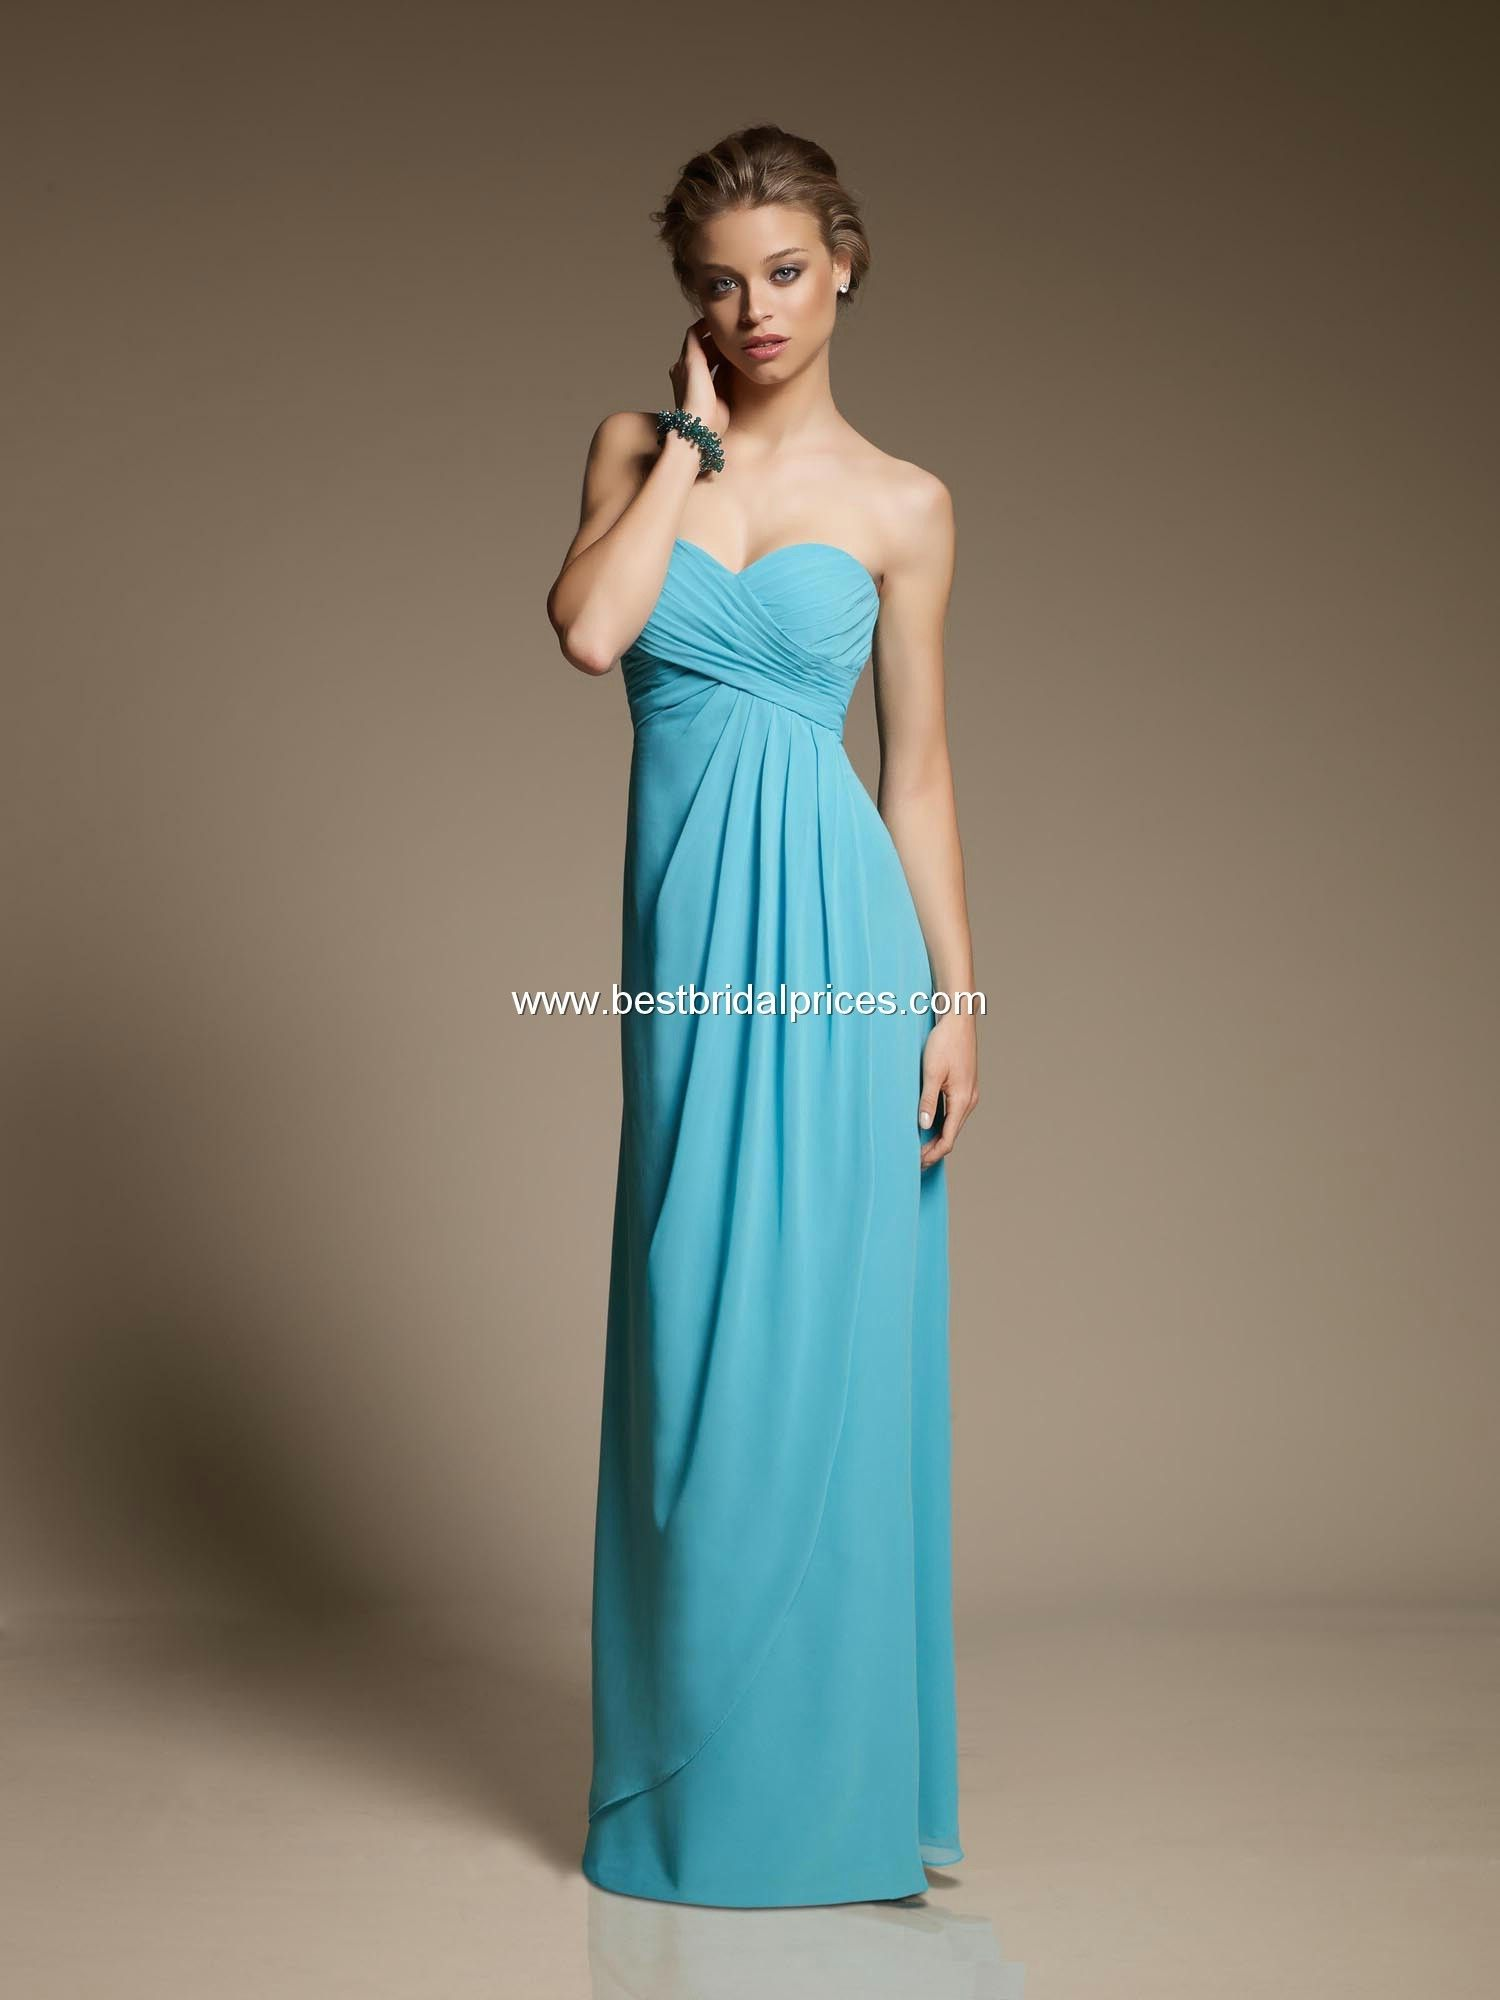 Express Bridesmaid Dresses Images - Braidsmaid Dress, Cocktail Dress ...